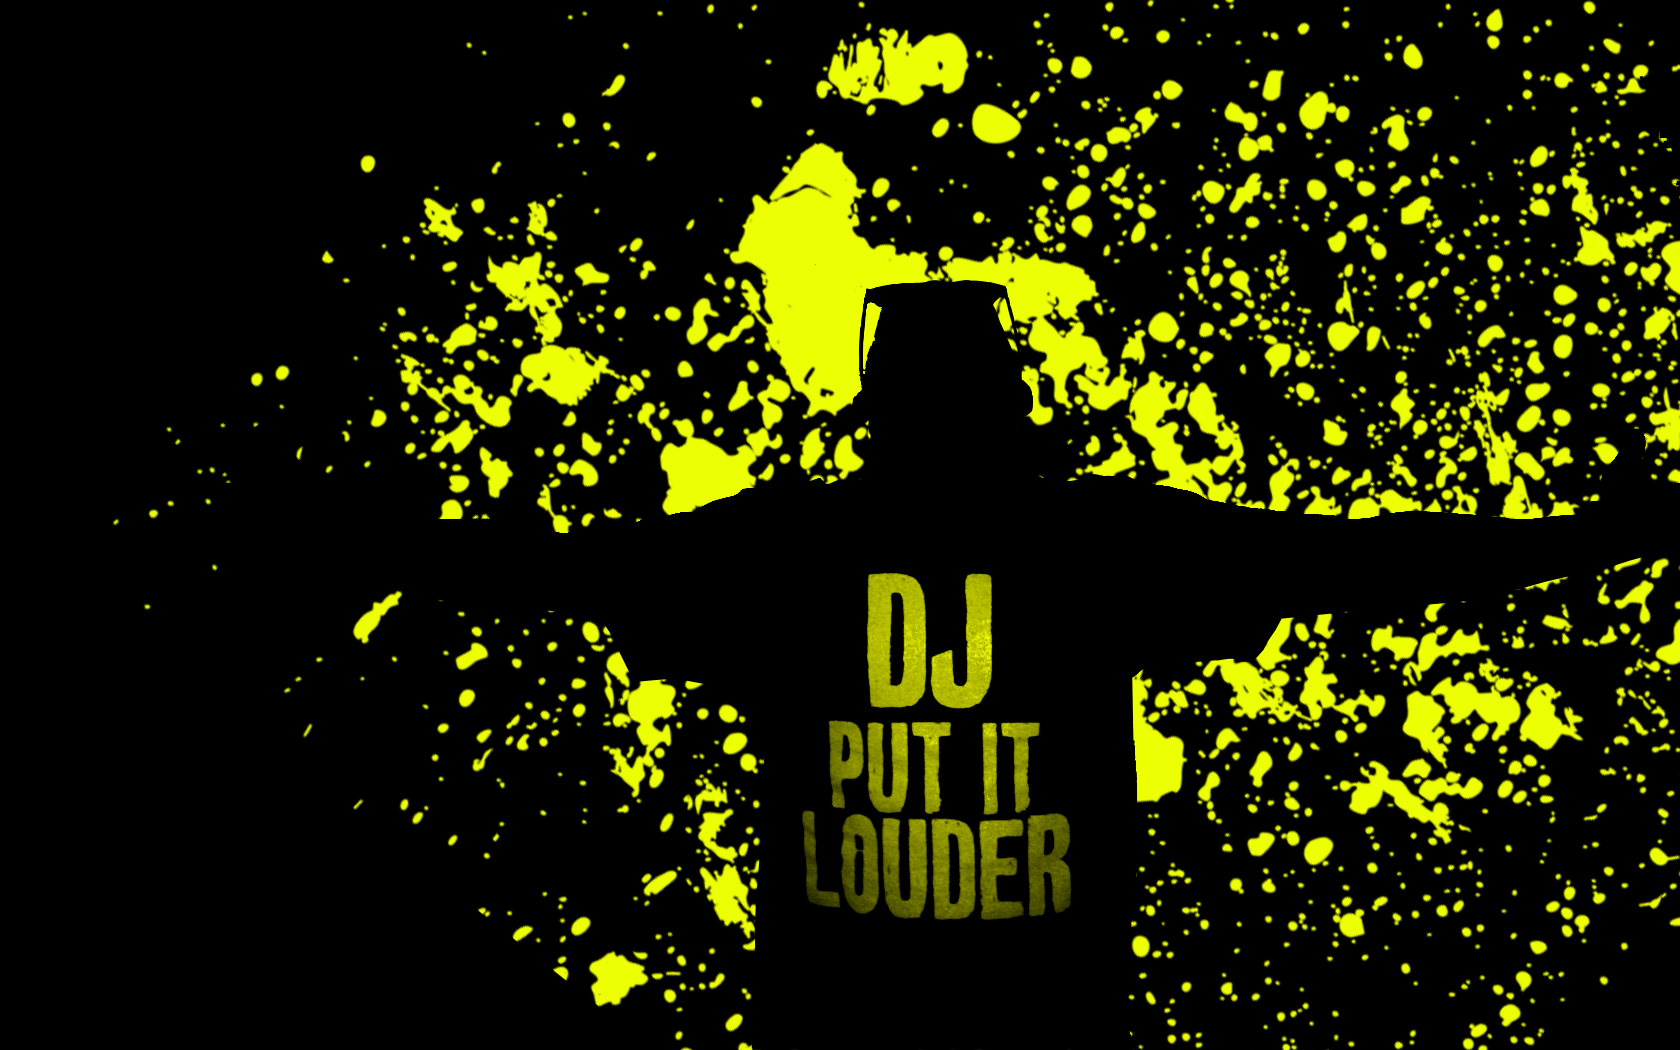 Cool Abstract Dj Music Wallpaper: Wallpaper Cave